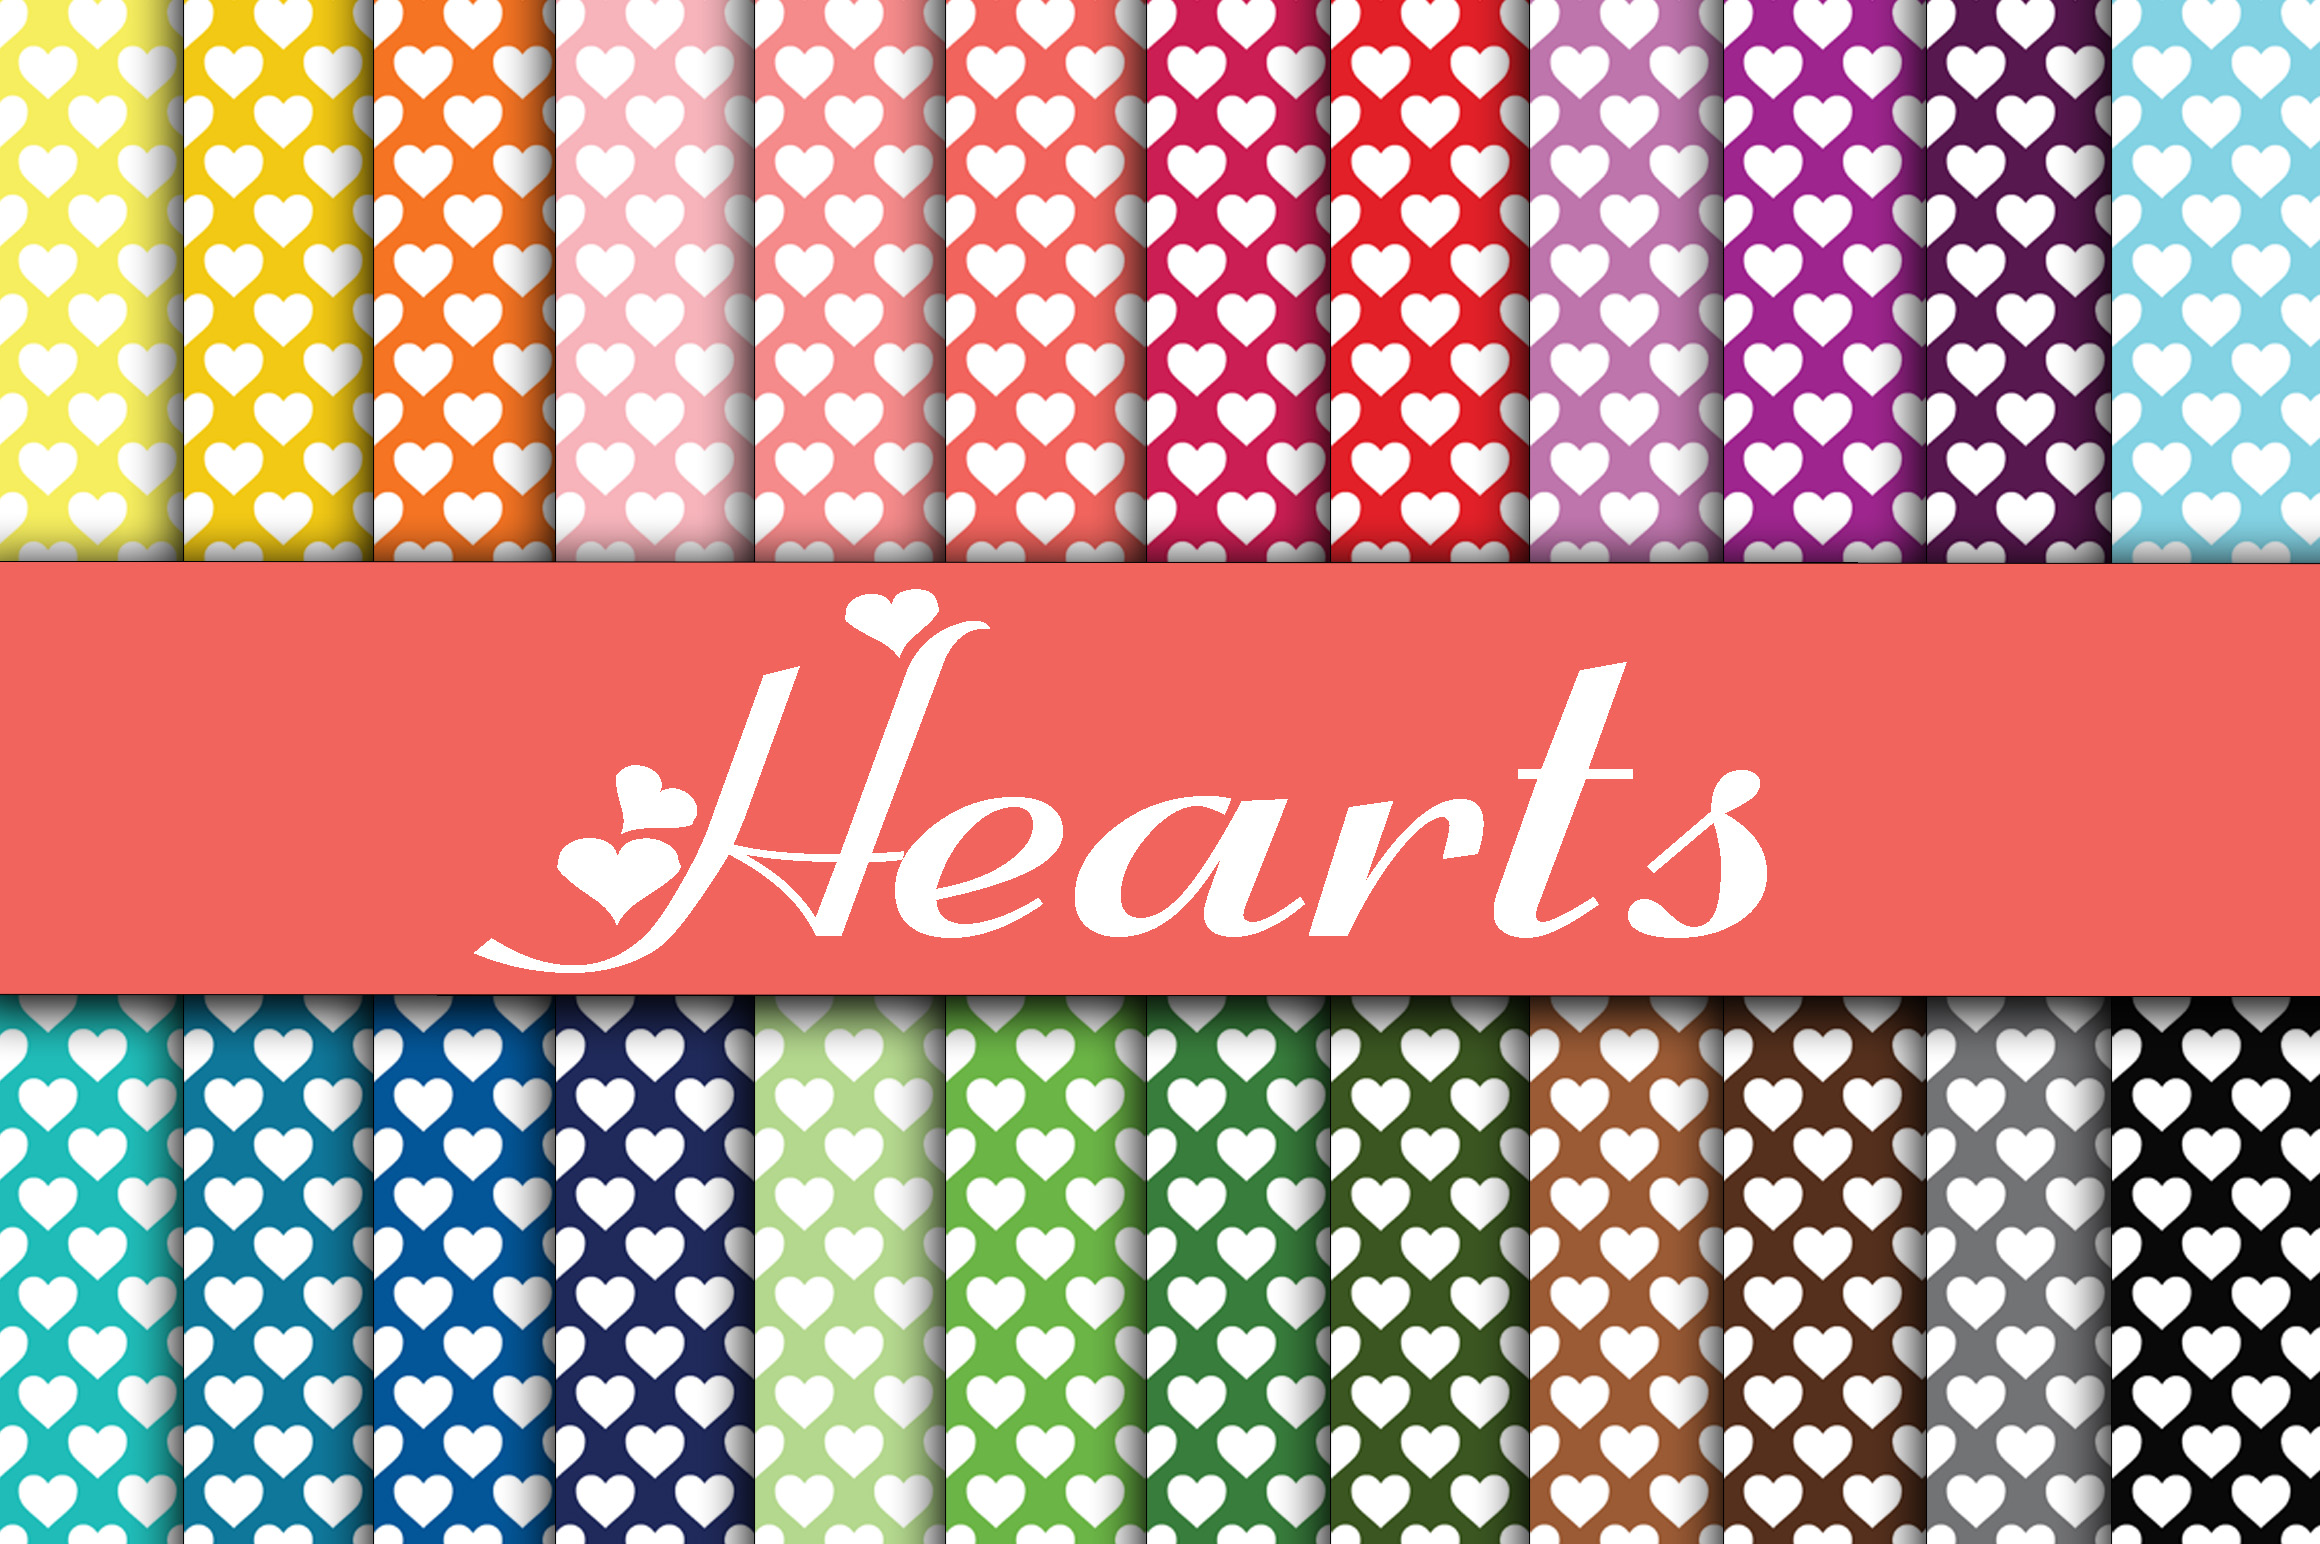 Hearts Digital Paper Graphic Backgrounds By oldmarketdesigns